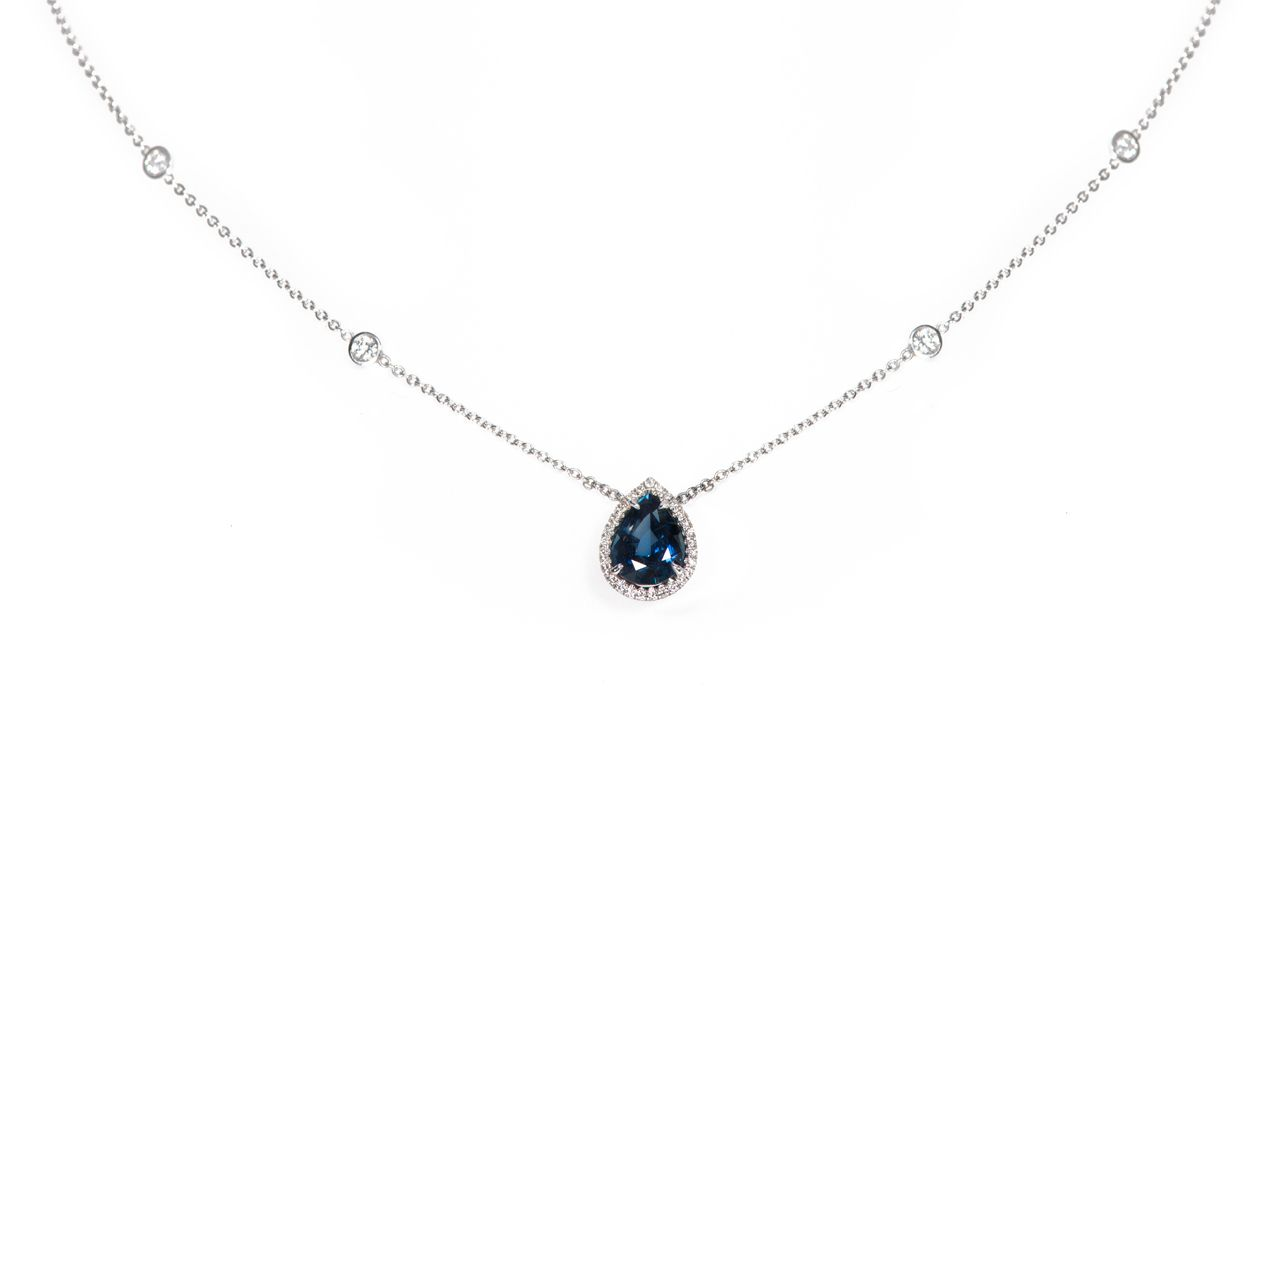 ac1f8724cea81 Pear Shape Blue Sapphire Pendant with Diamond Halo in White Gold ...